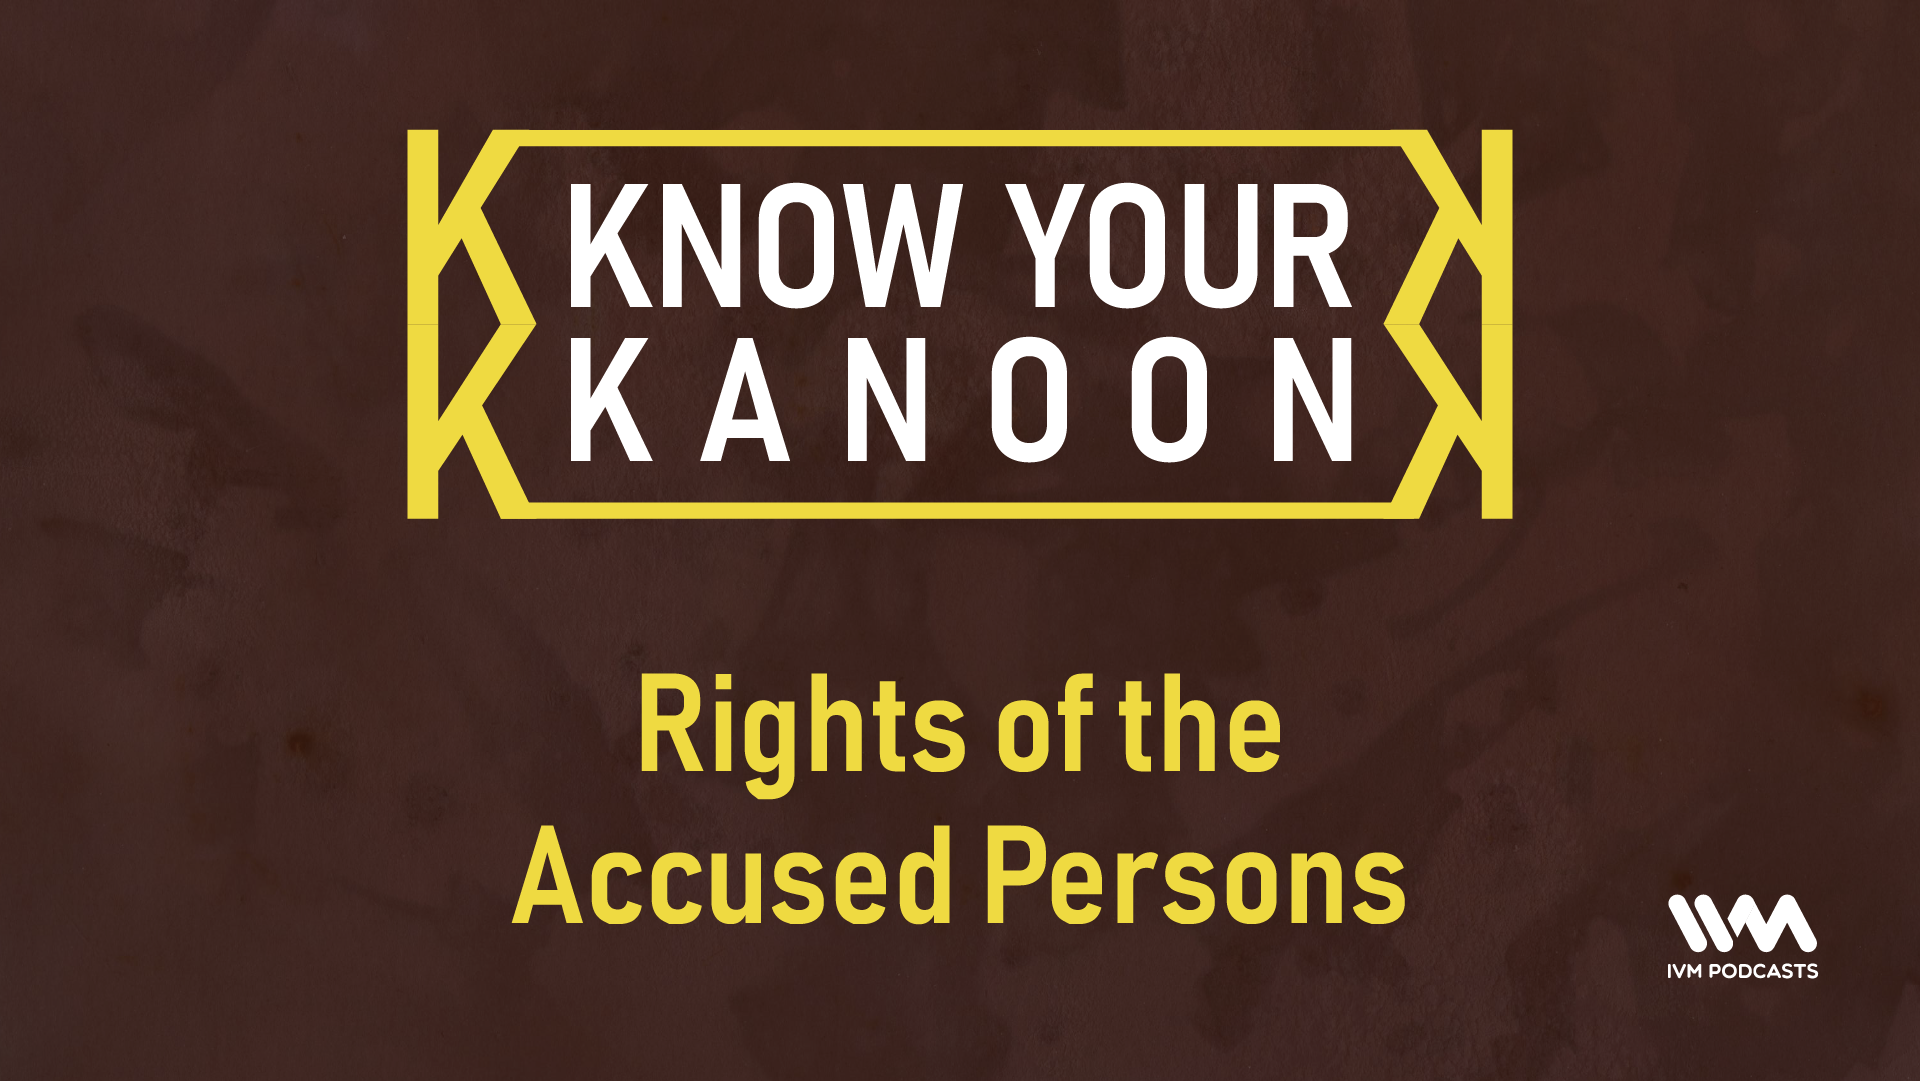 KnowYourKanoonEpisode36.png